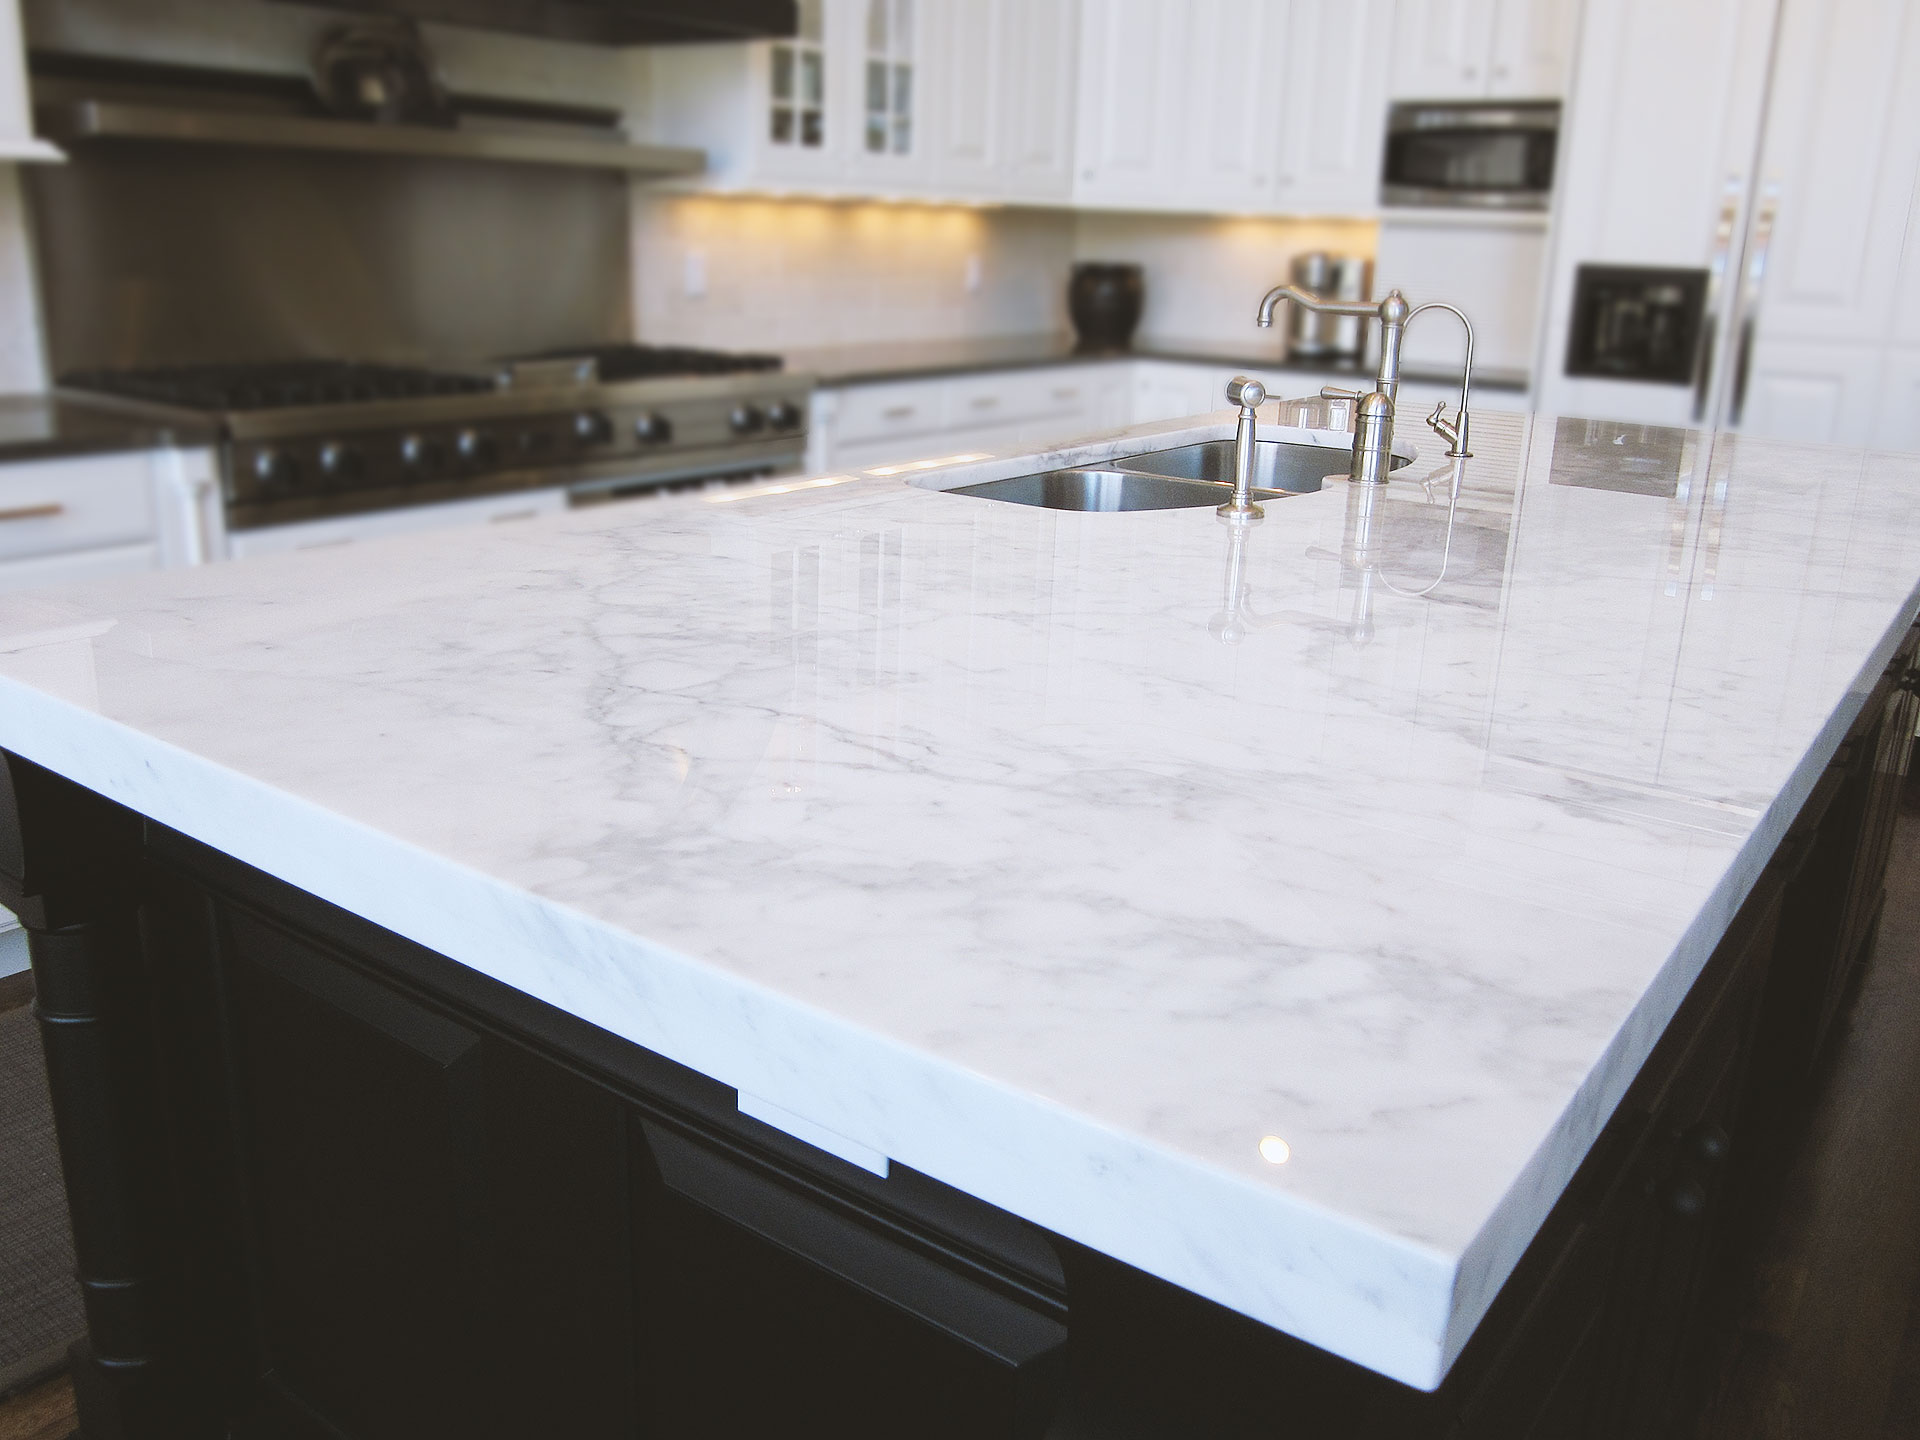 Corian Marble Countertops Kami Countertops Your Only Full Service Countertop Shop